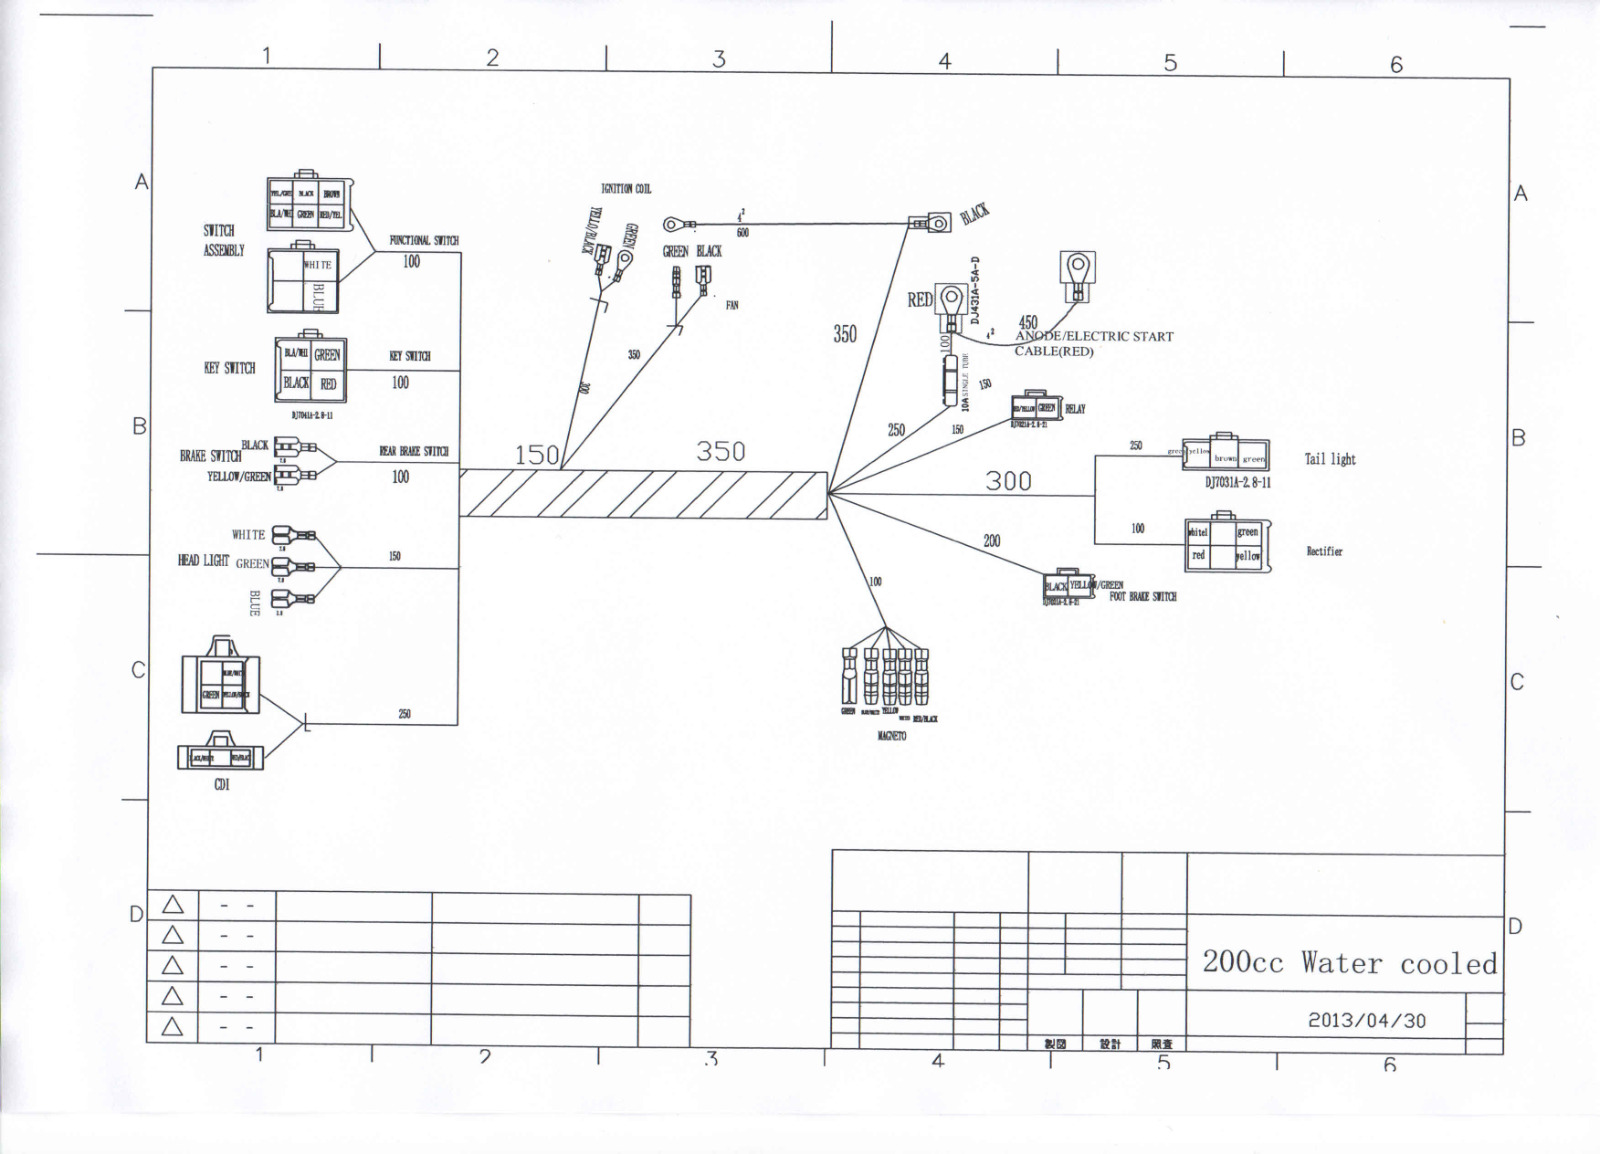 AUTD040______ 200CC_WATER_COOL ranger scooter wiring diagram best wiring library